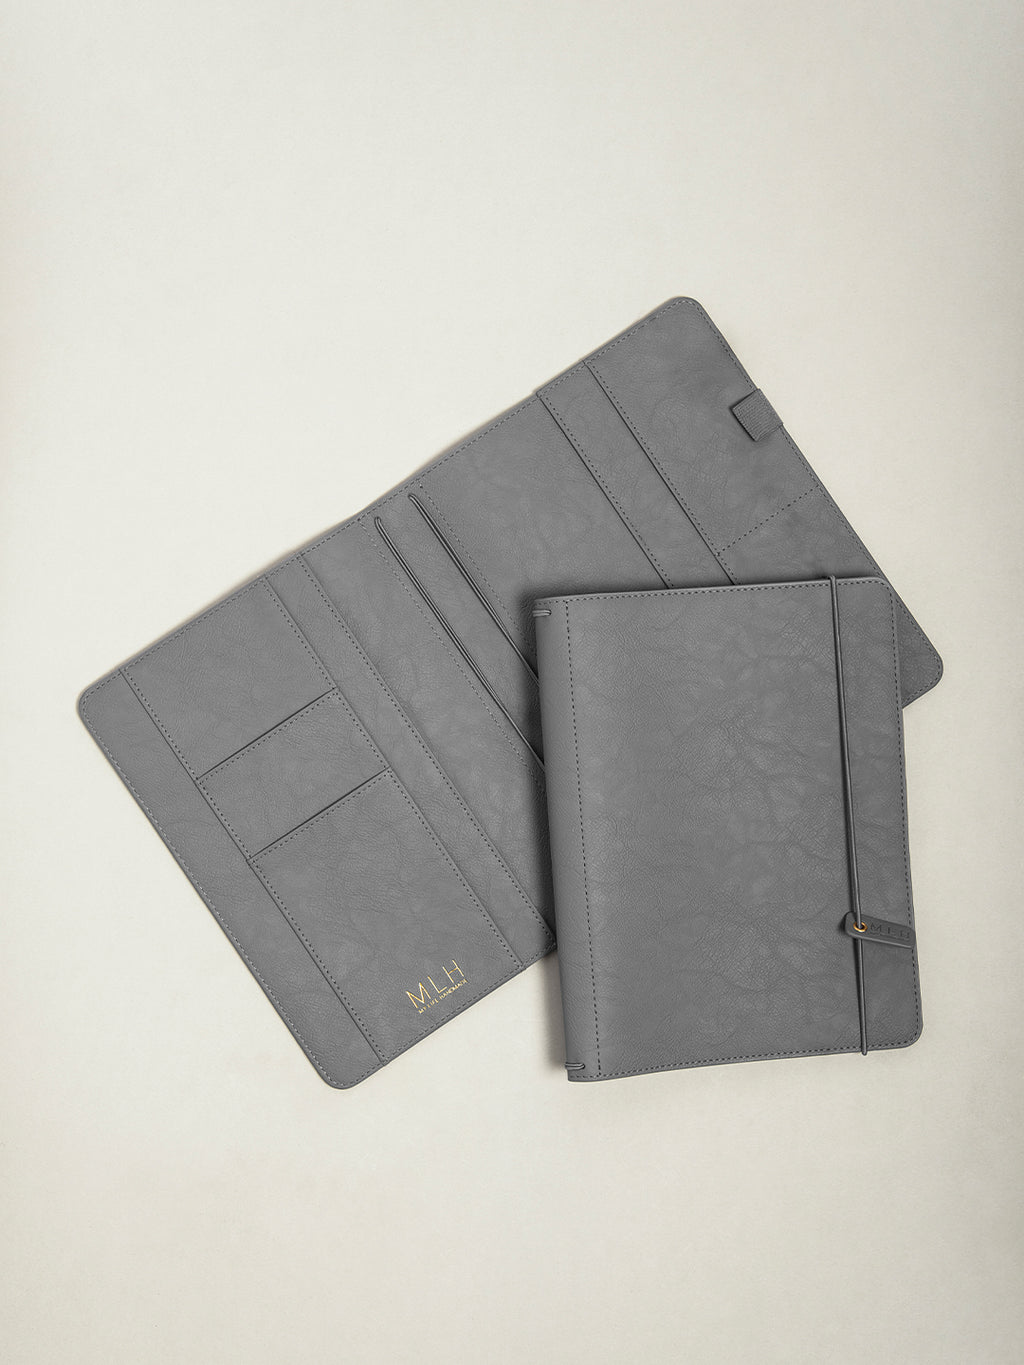 Dark Grey PU Leather A5 Journal Holder